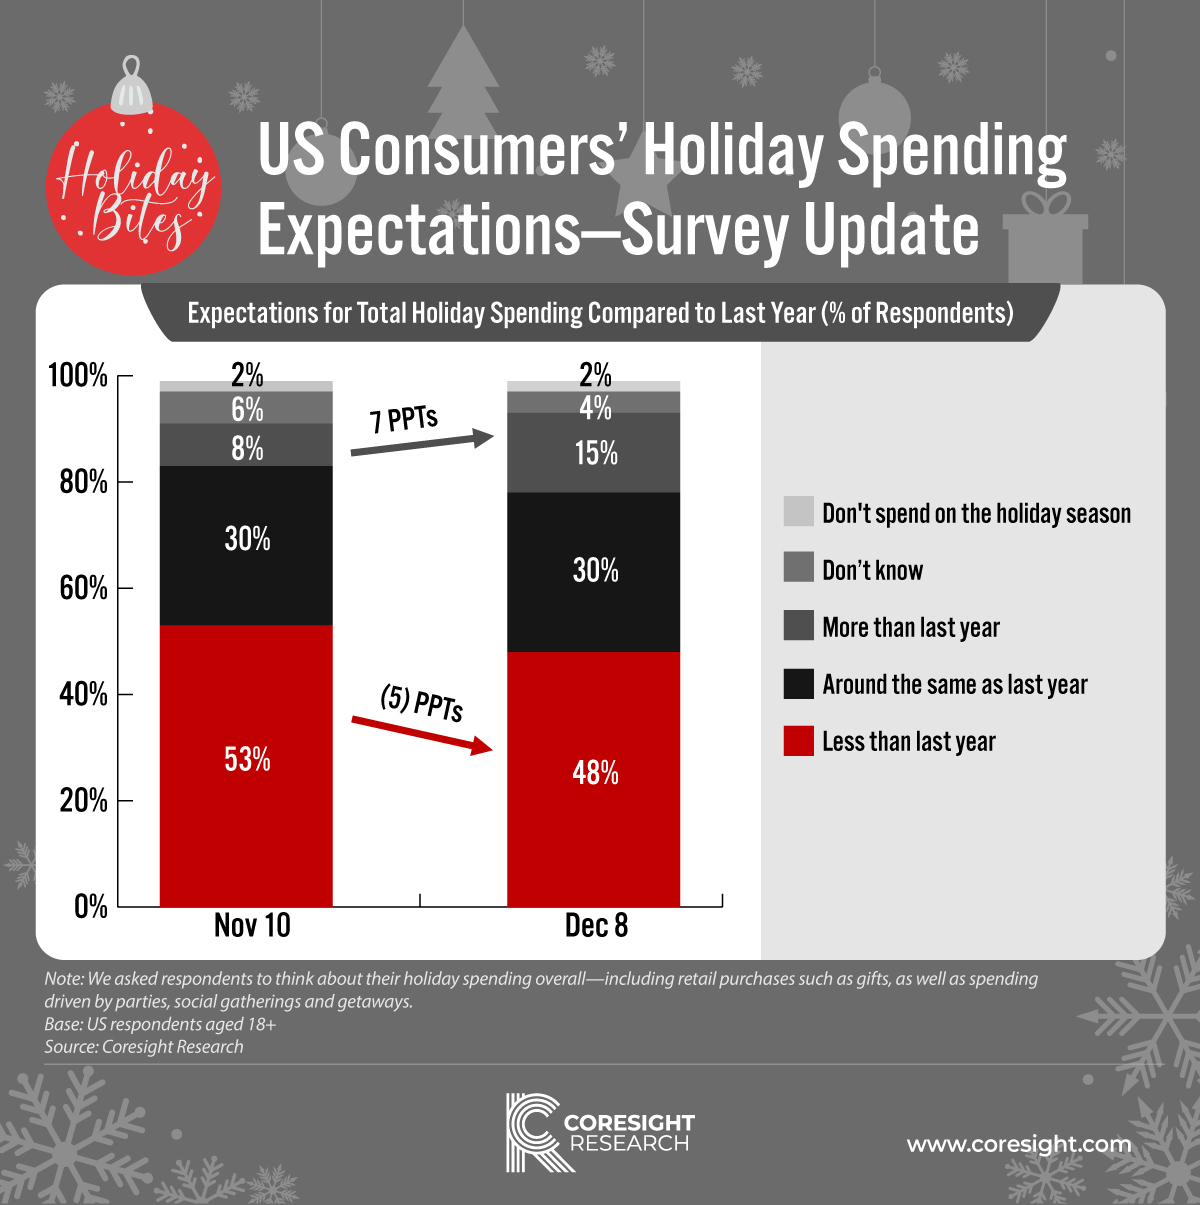 Holiday-Bites-Holiday-Spending-Expectations